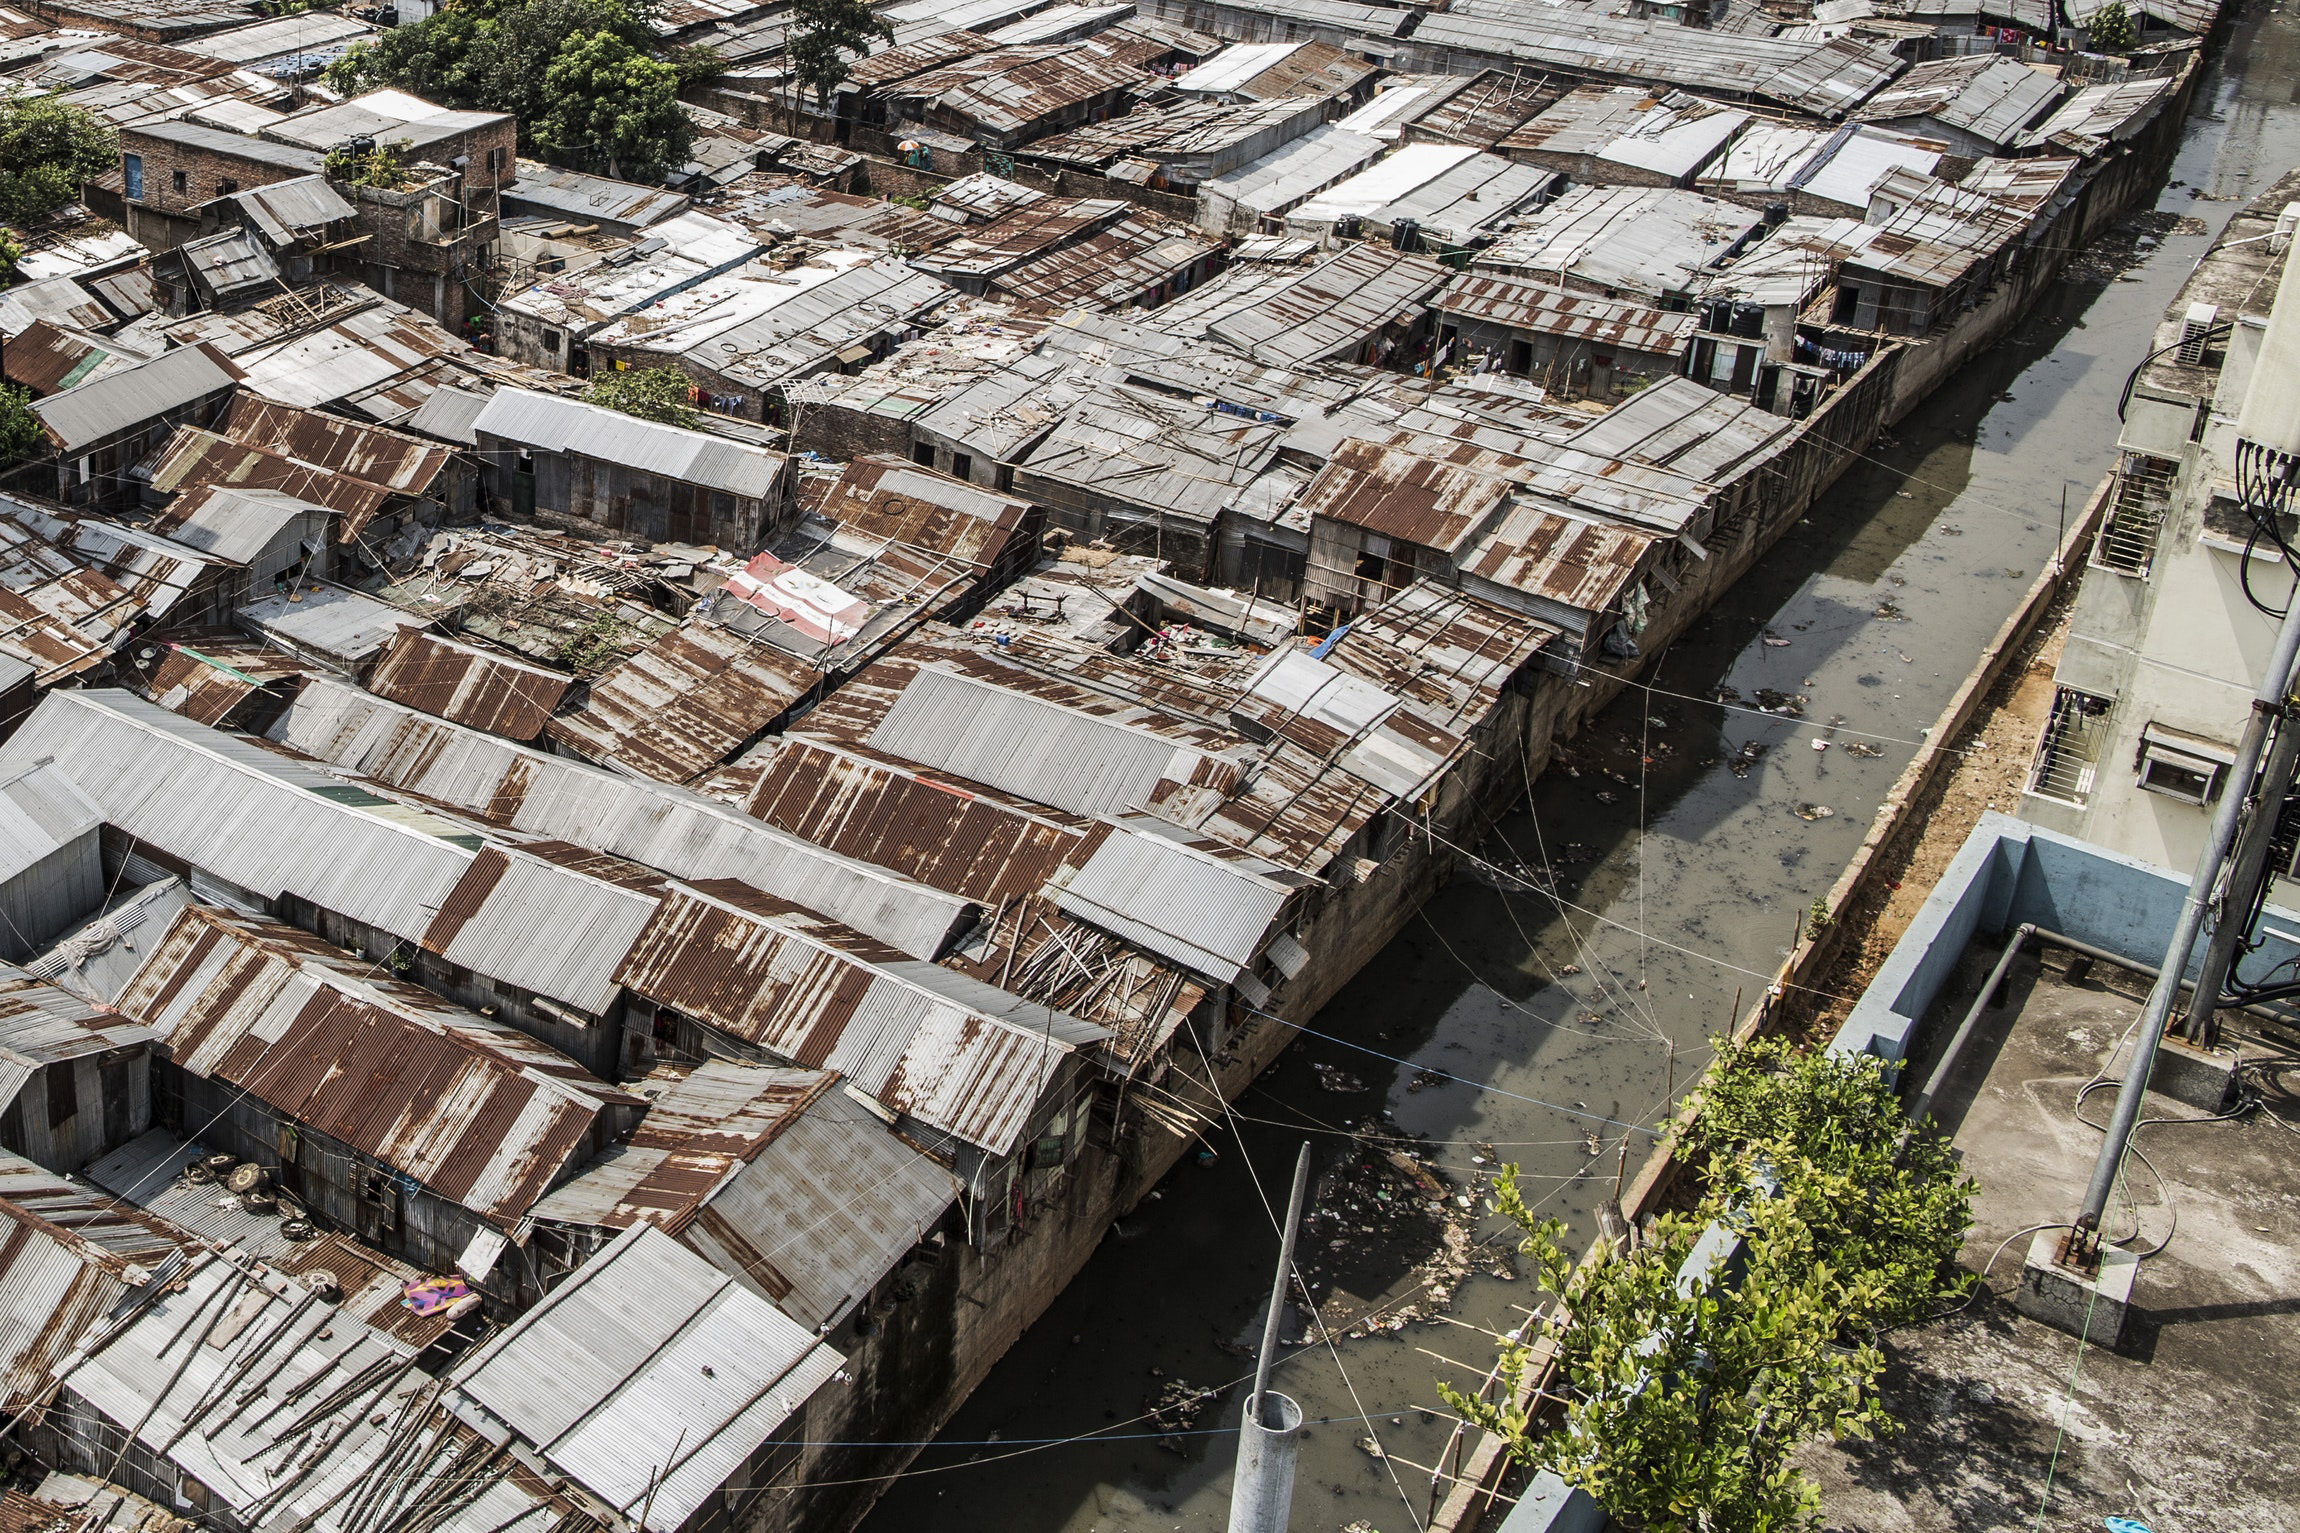 Aerial view of slum roofs in Dhaka